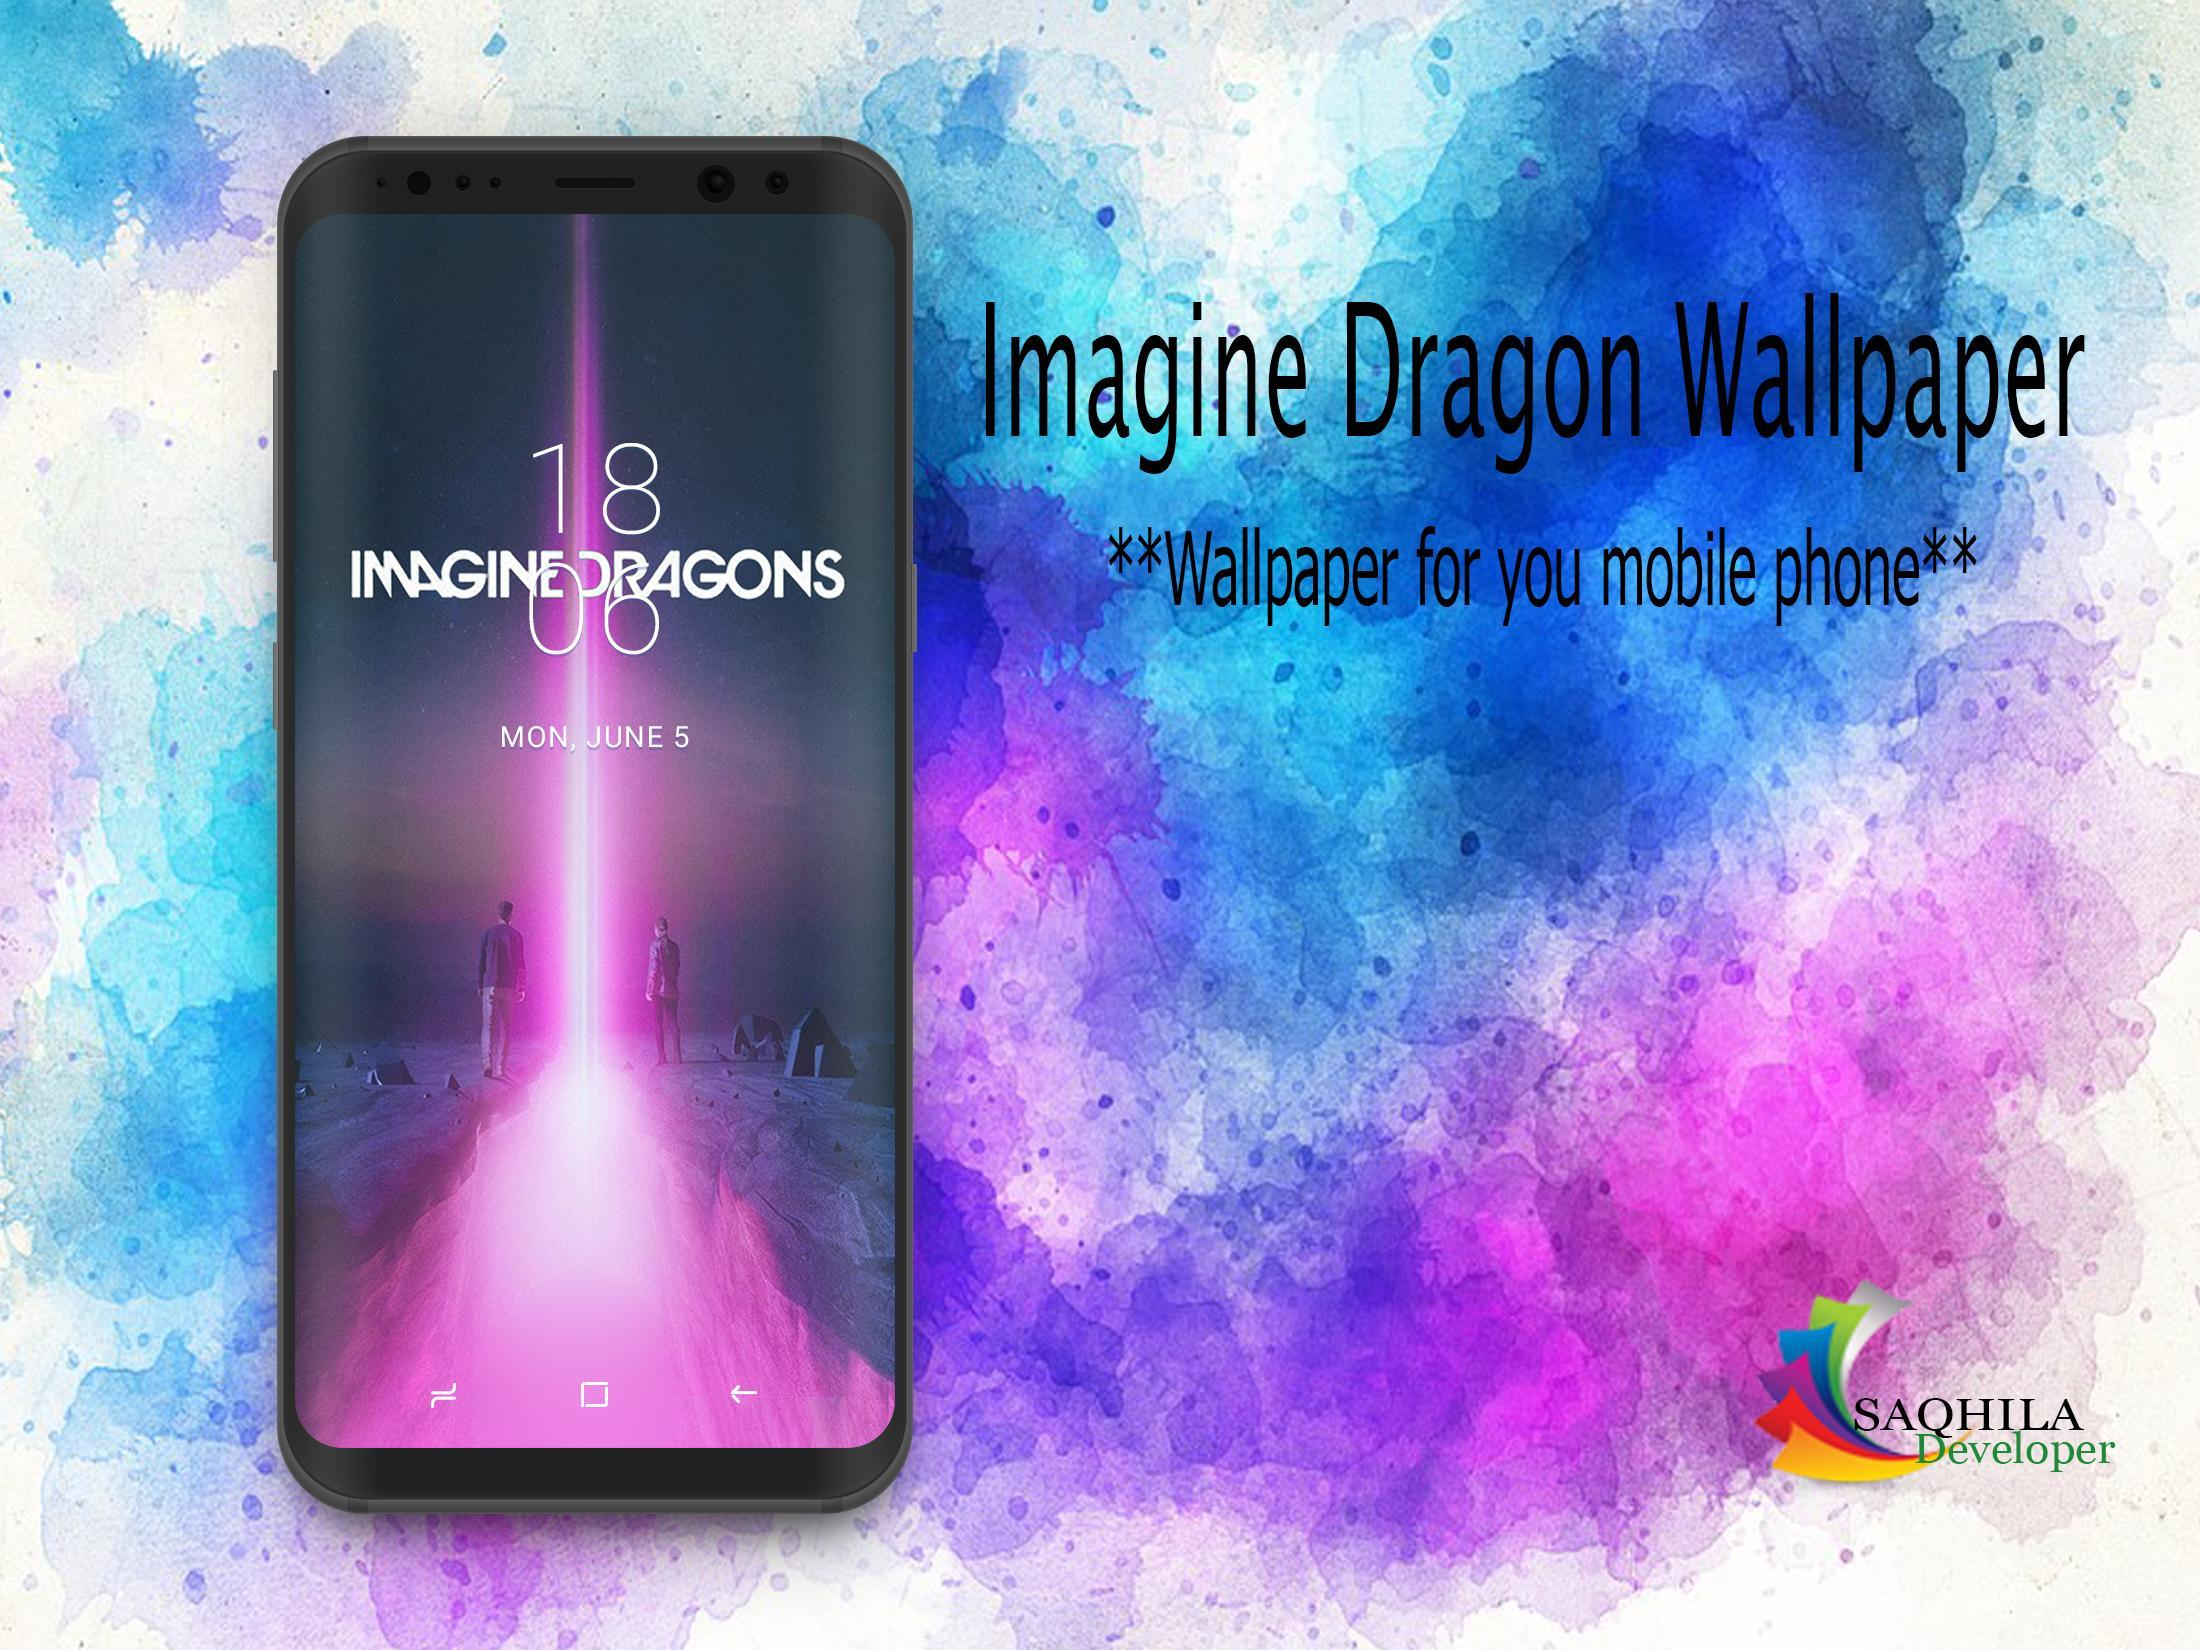 Imagine Dragons Wallpaper Hd For Android Apk Download